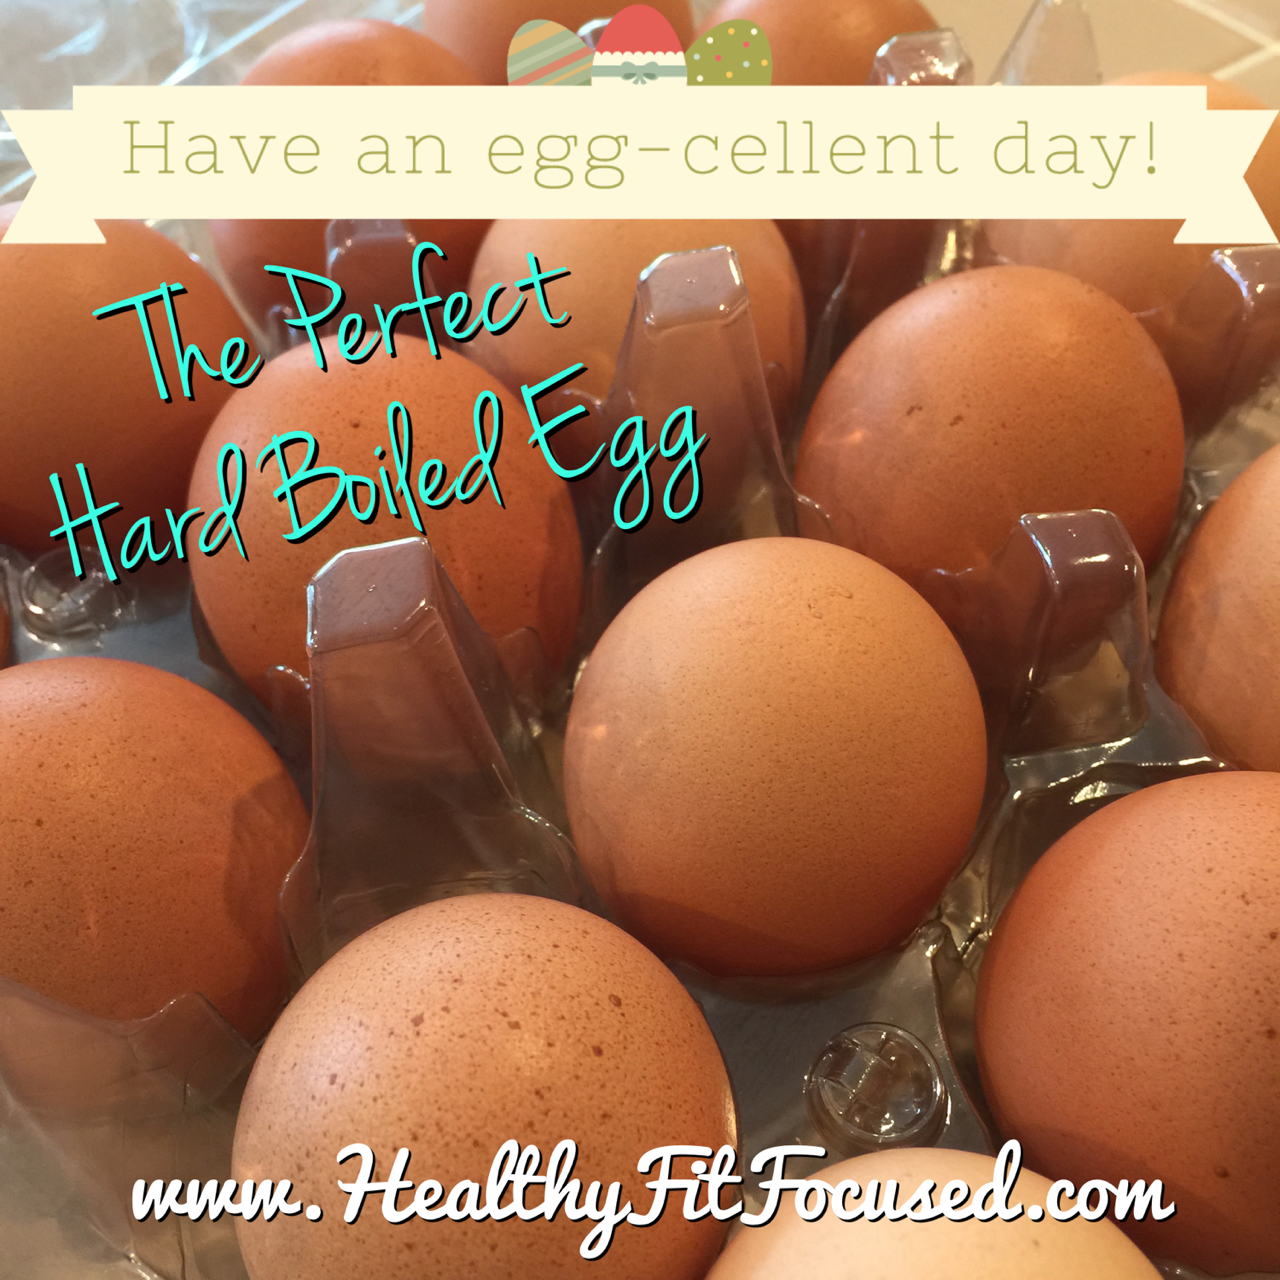 The Perfect Hard Boiled Egg, eggs are great for snacks on the 21 Day Fix or any clean eating plan, www.HealthyFitFocused.com